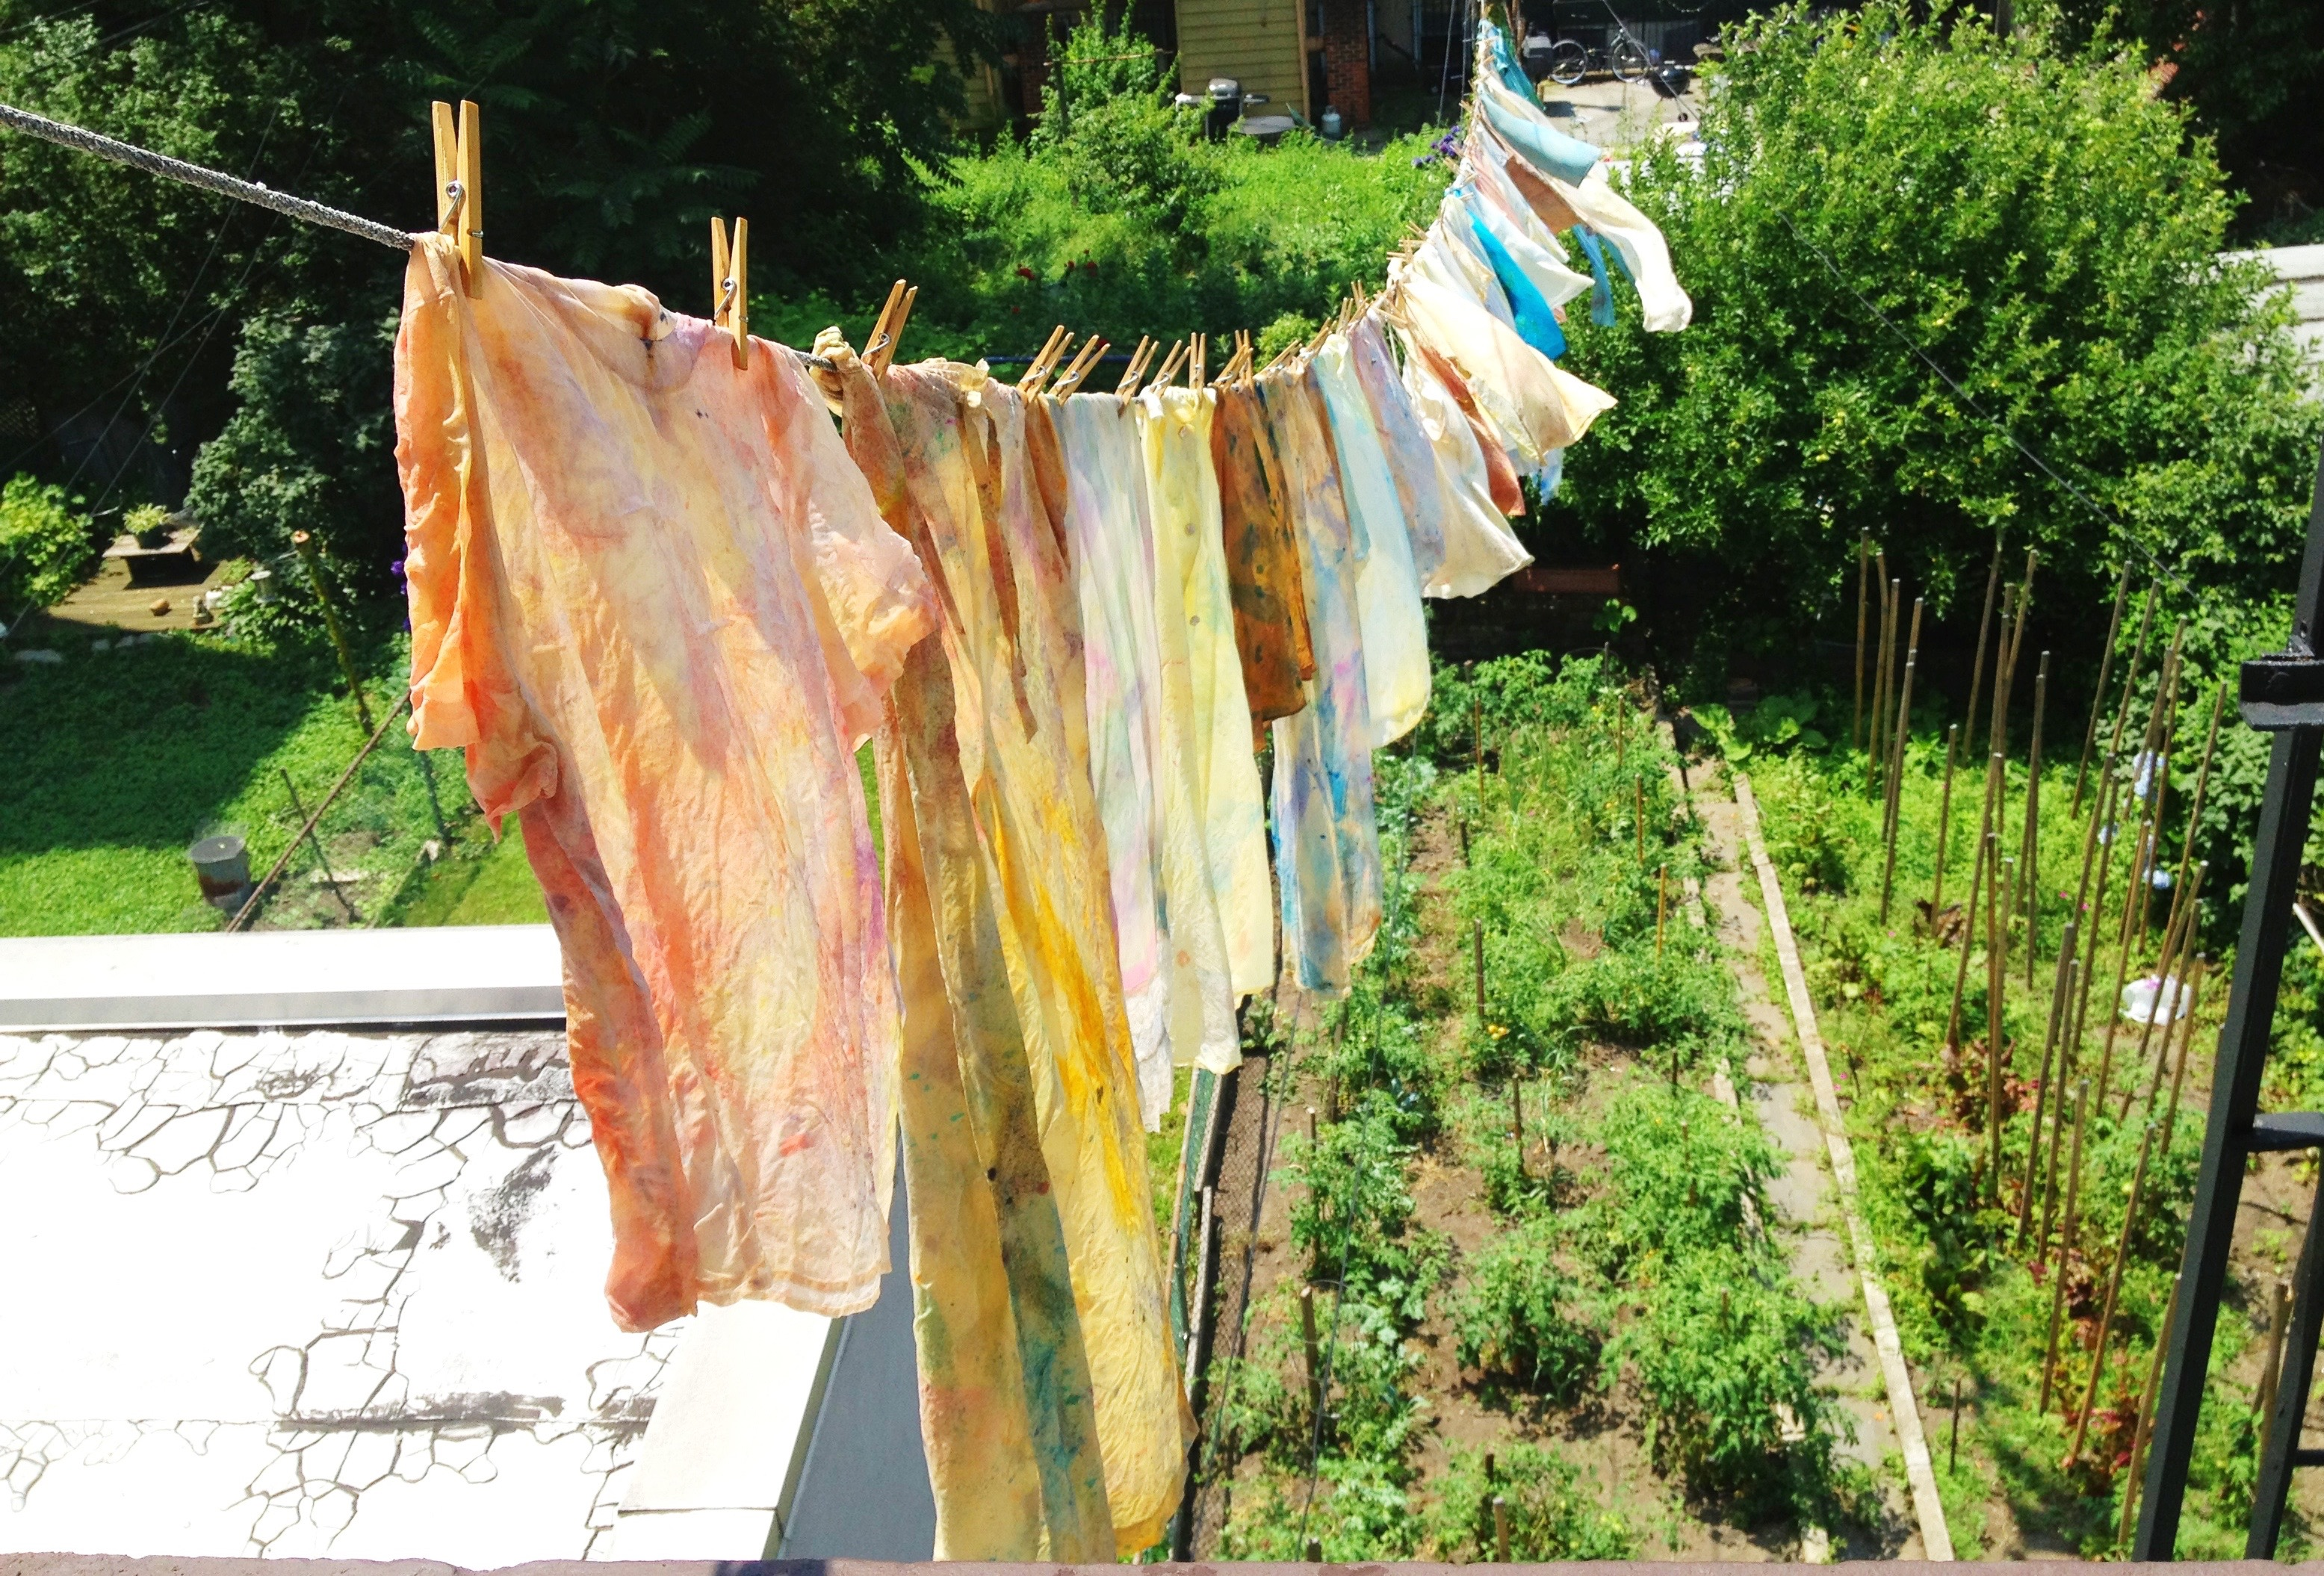 Newly dyed silks air-drying over Nova's backyard garden.